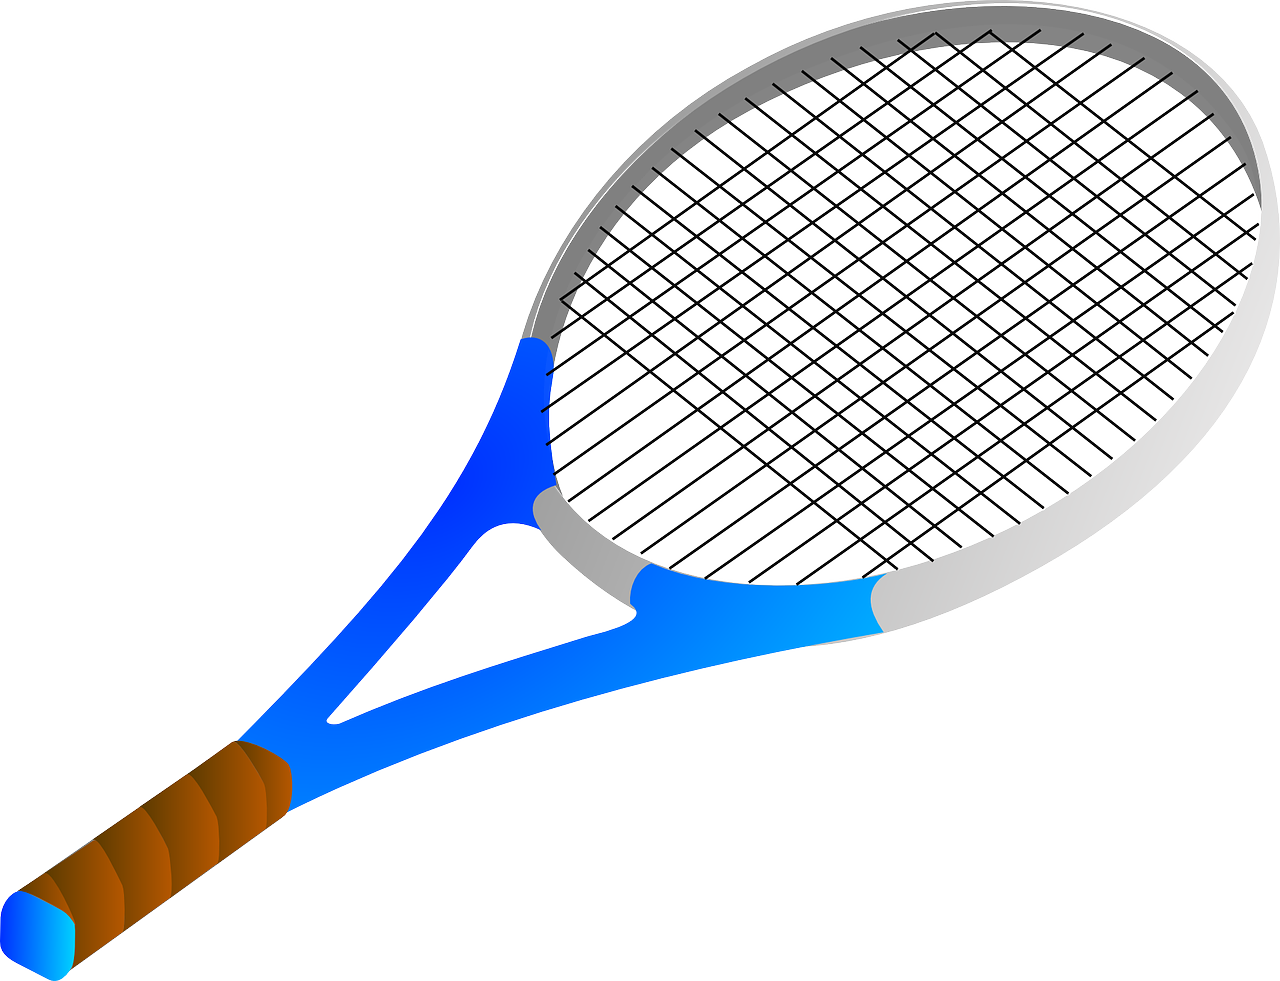 bat tennis blue free photo